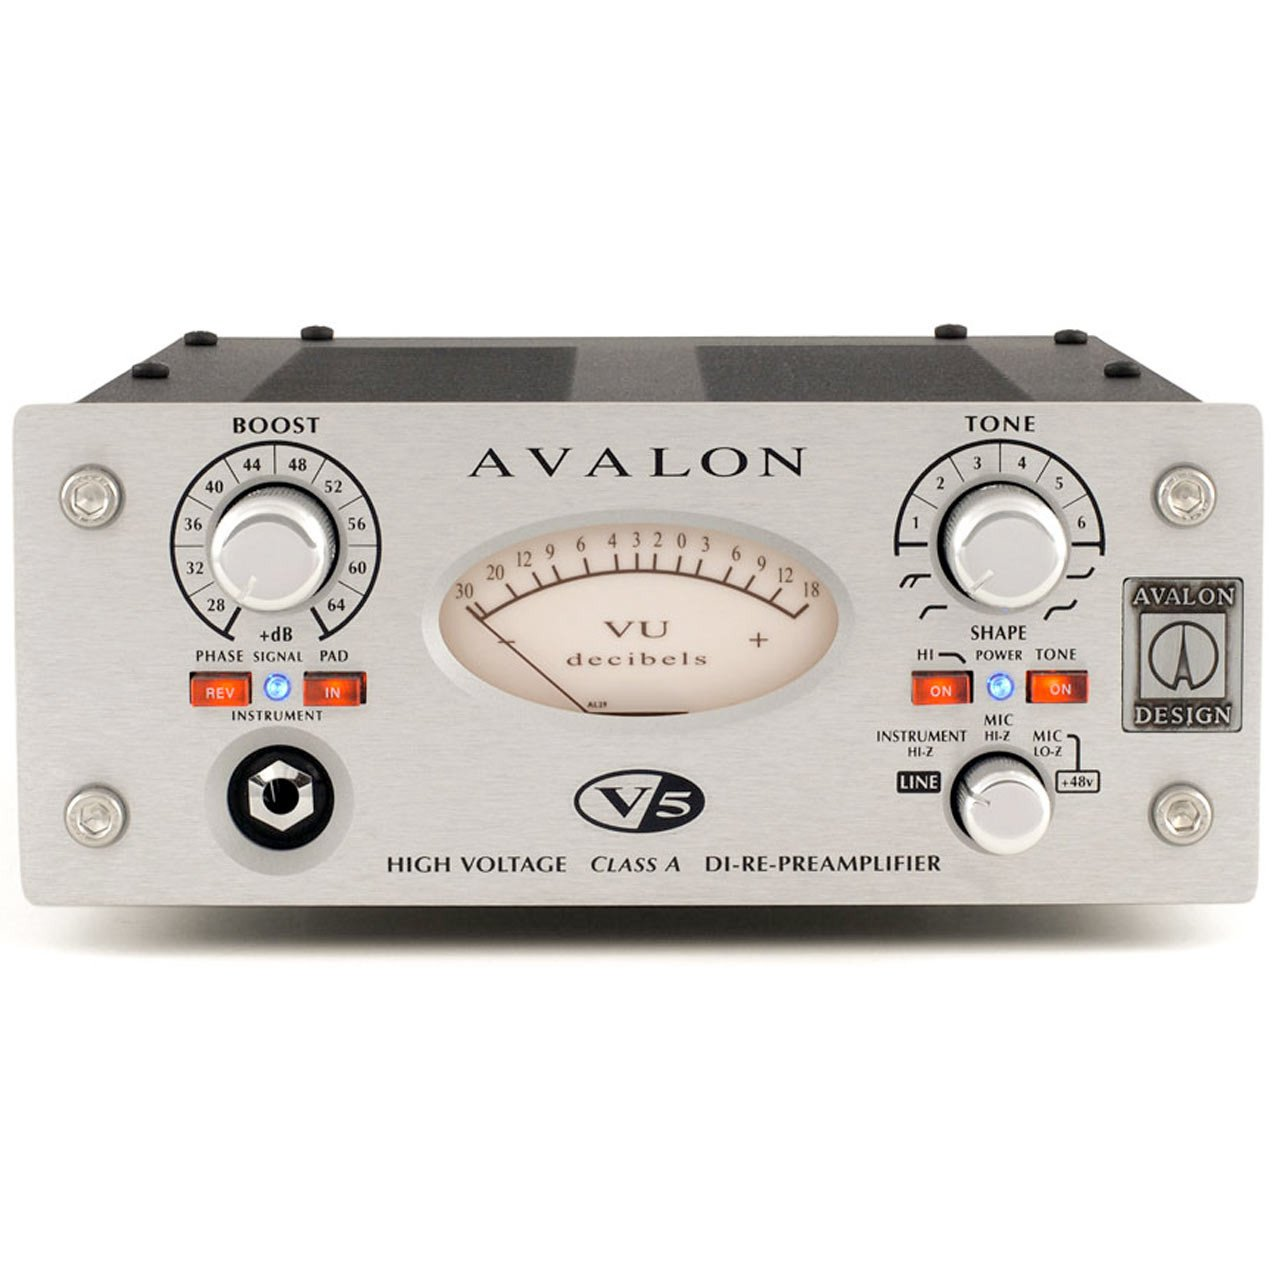 Preamps/Channel Strips - Avalon Design V5 Pure Class A Microphone Preamplifier SILVER